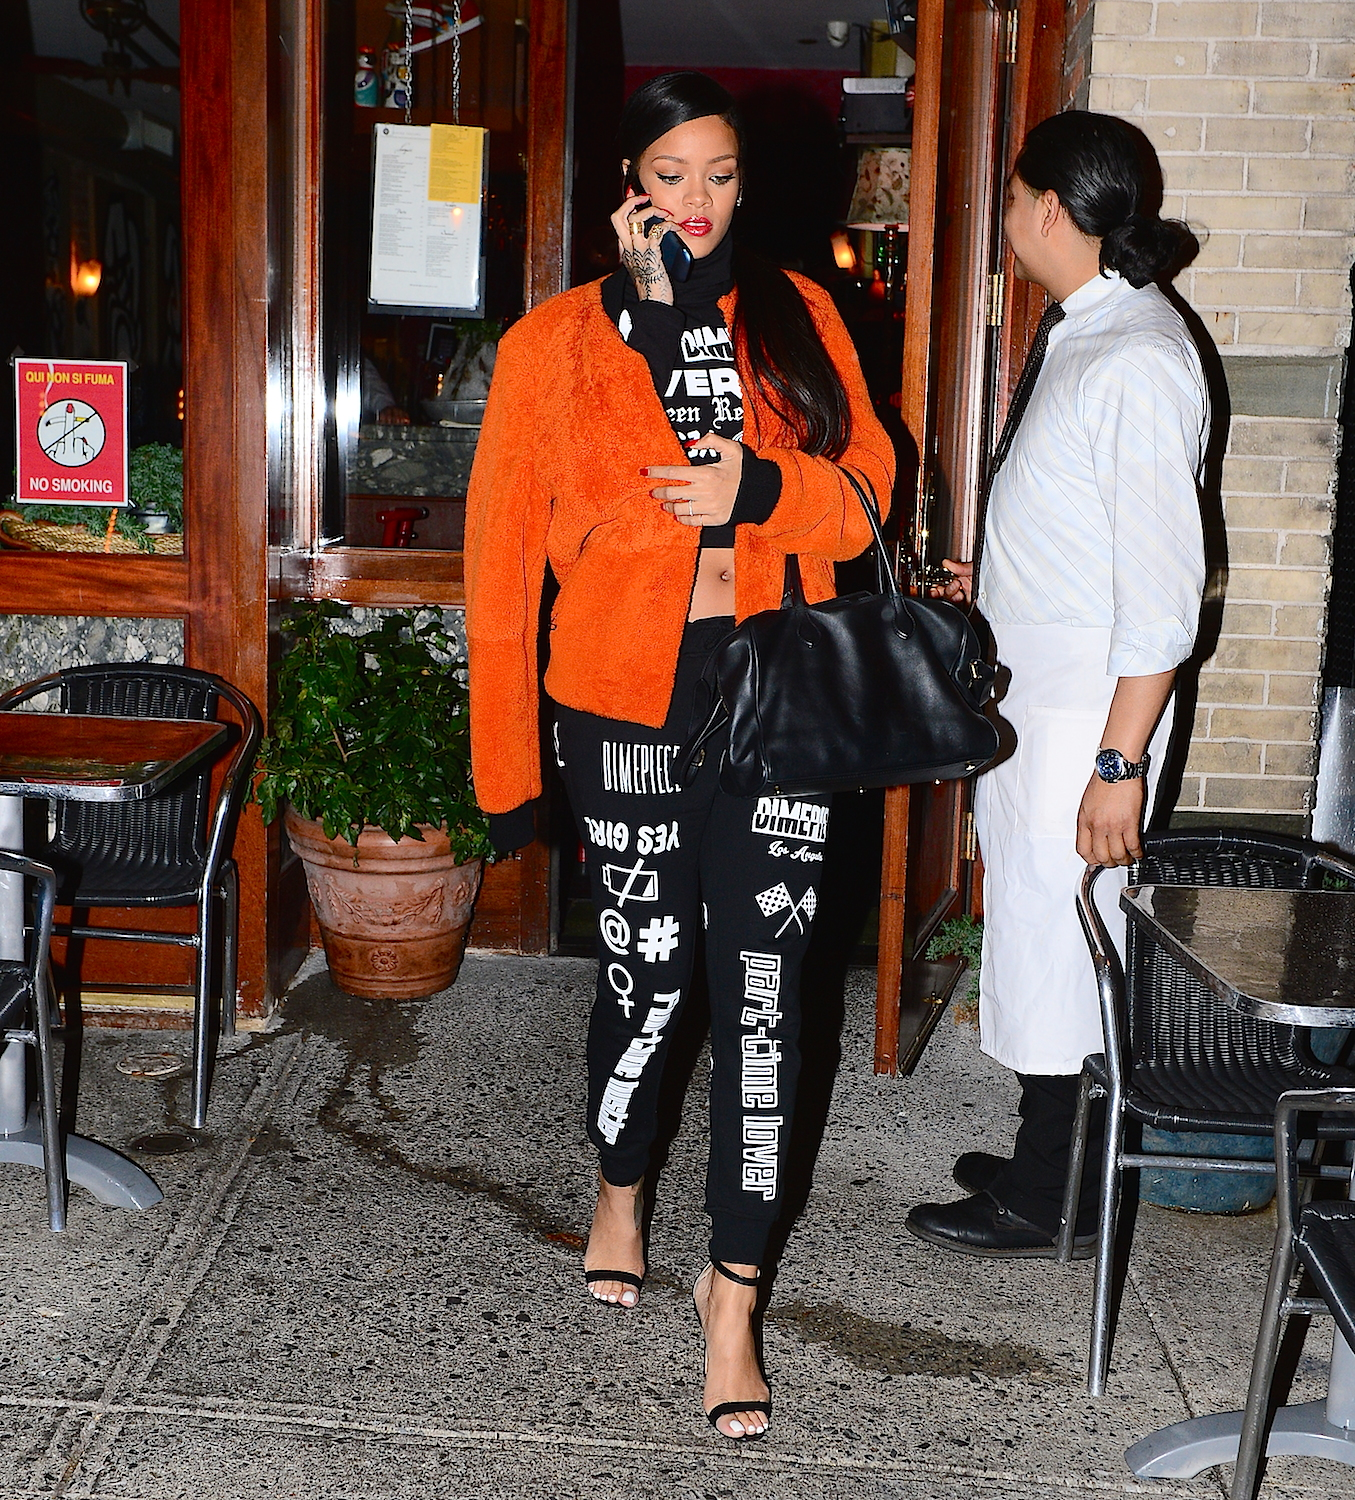 Rihanna was spotted leaving Da Silvano restaurant in NYC on Thursday, wearing a awesome